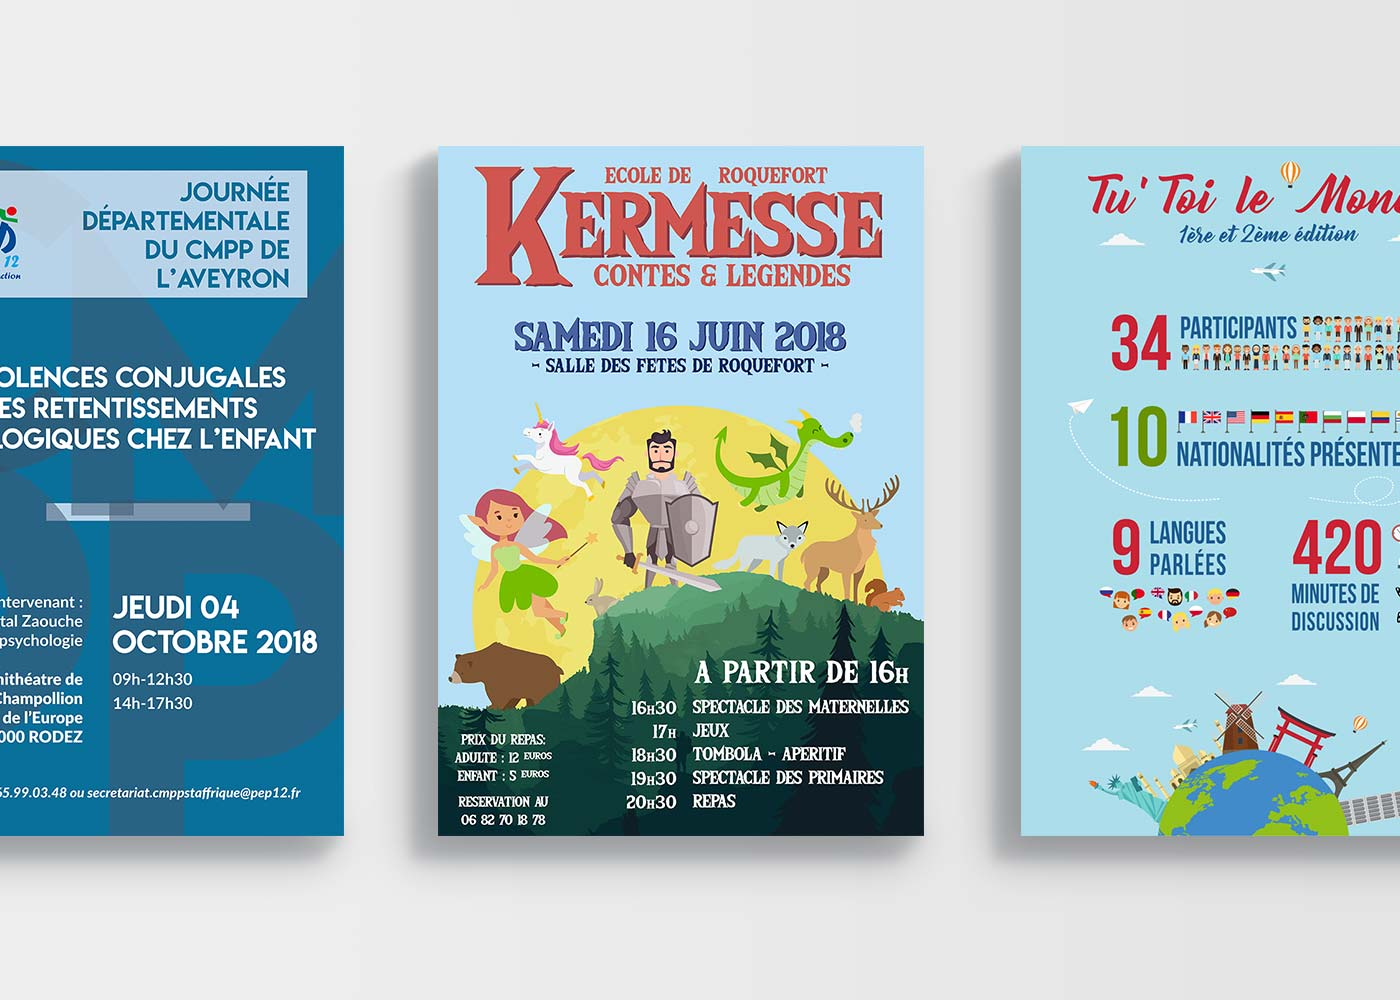 Affiches & infographies